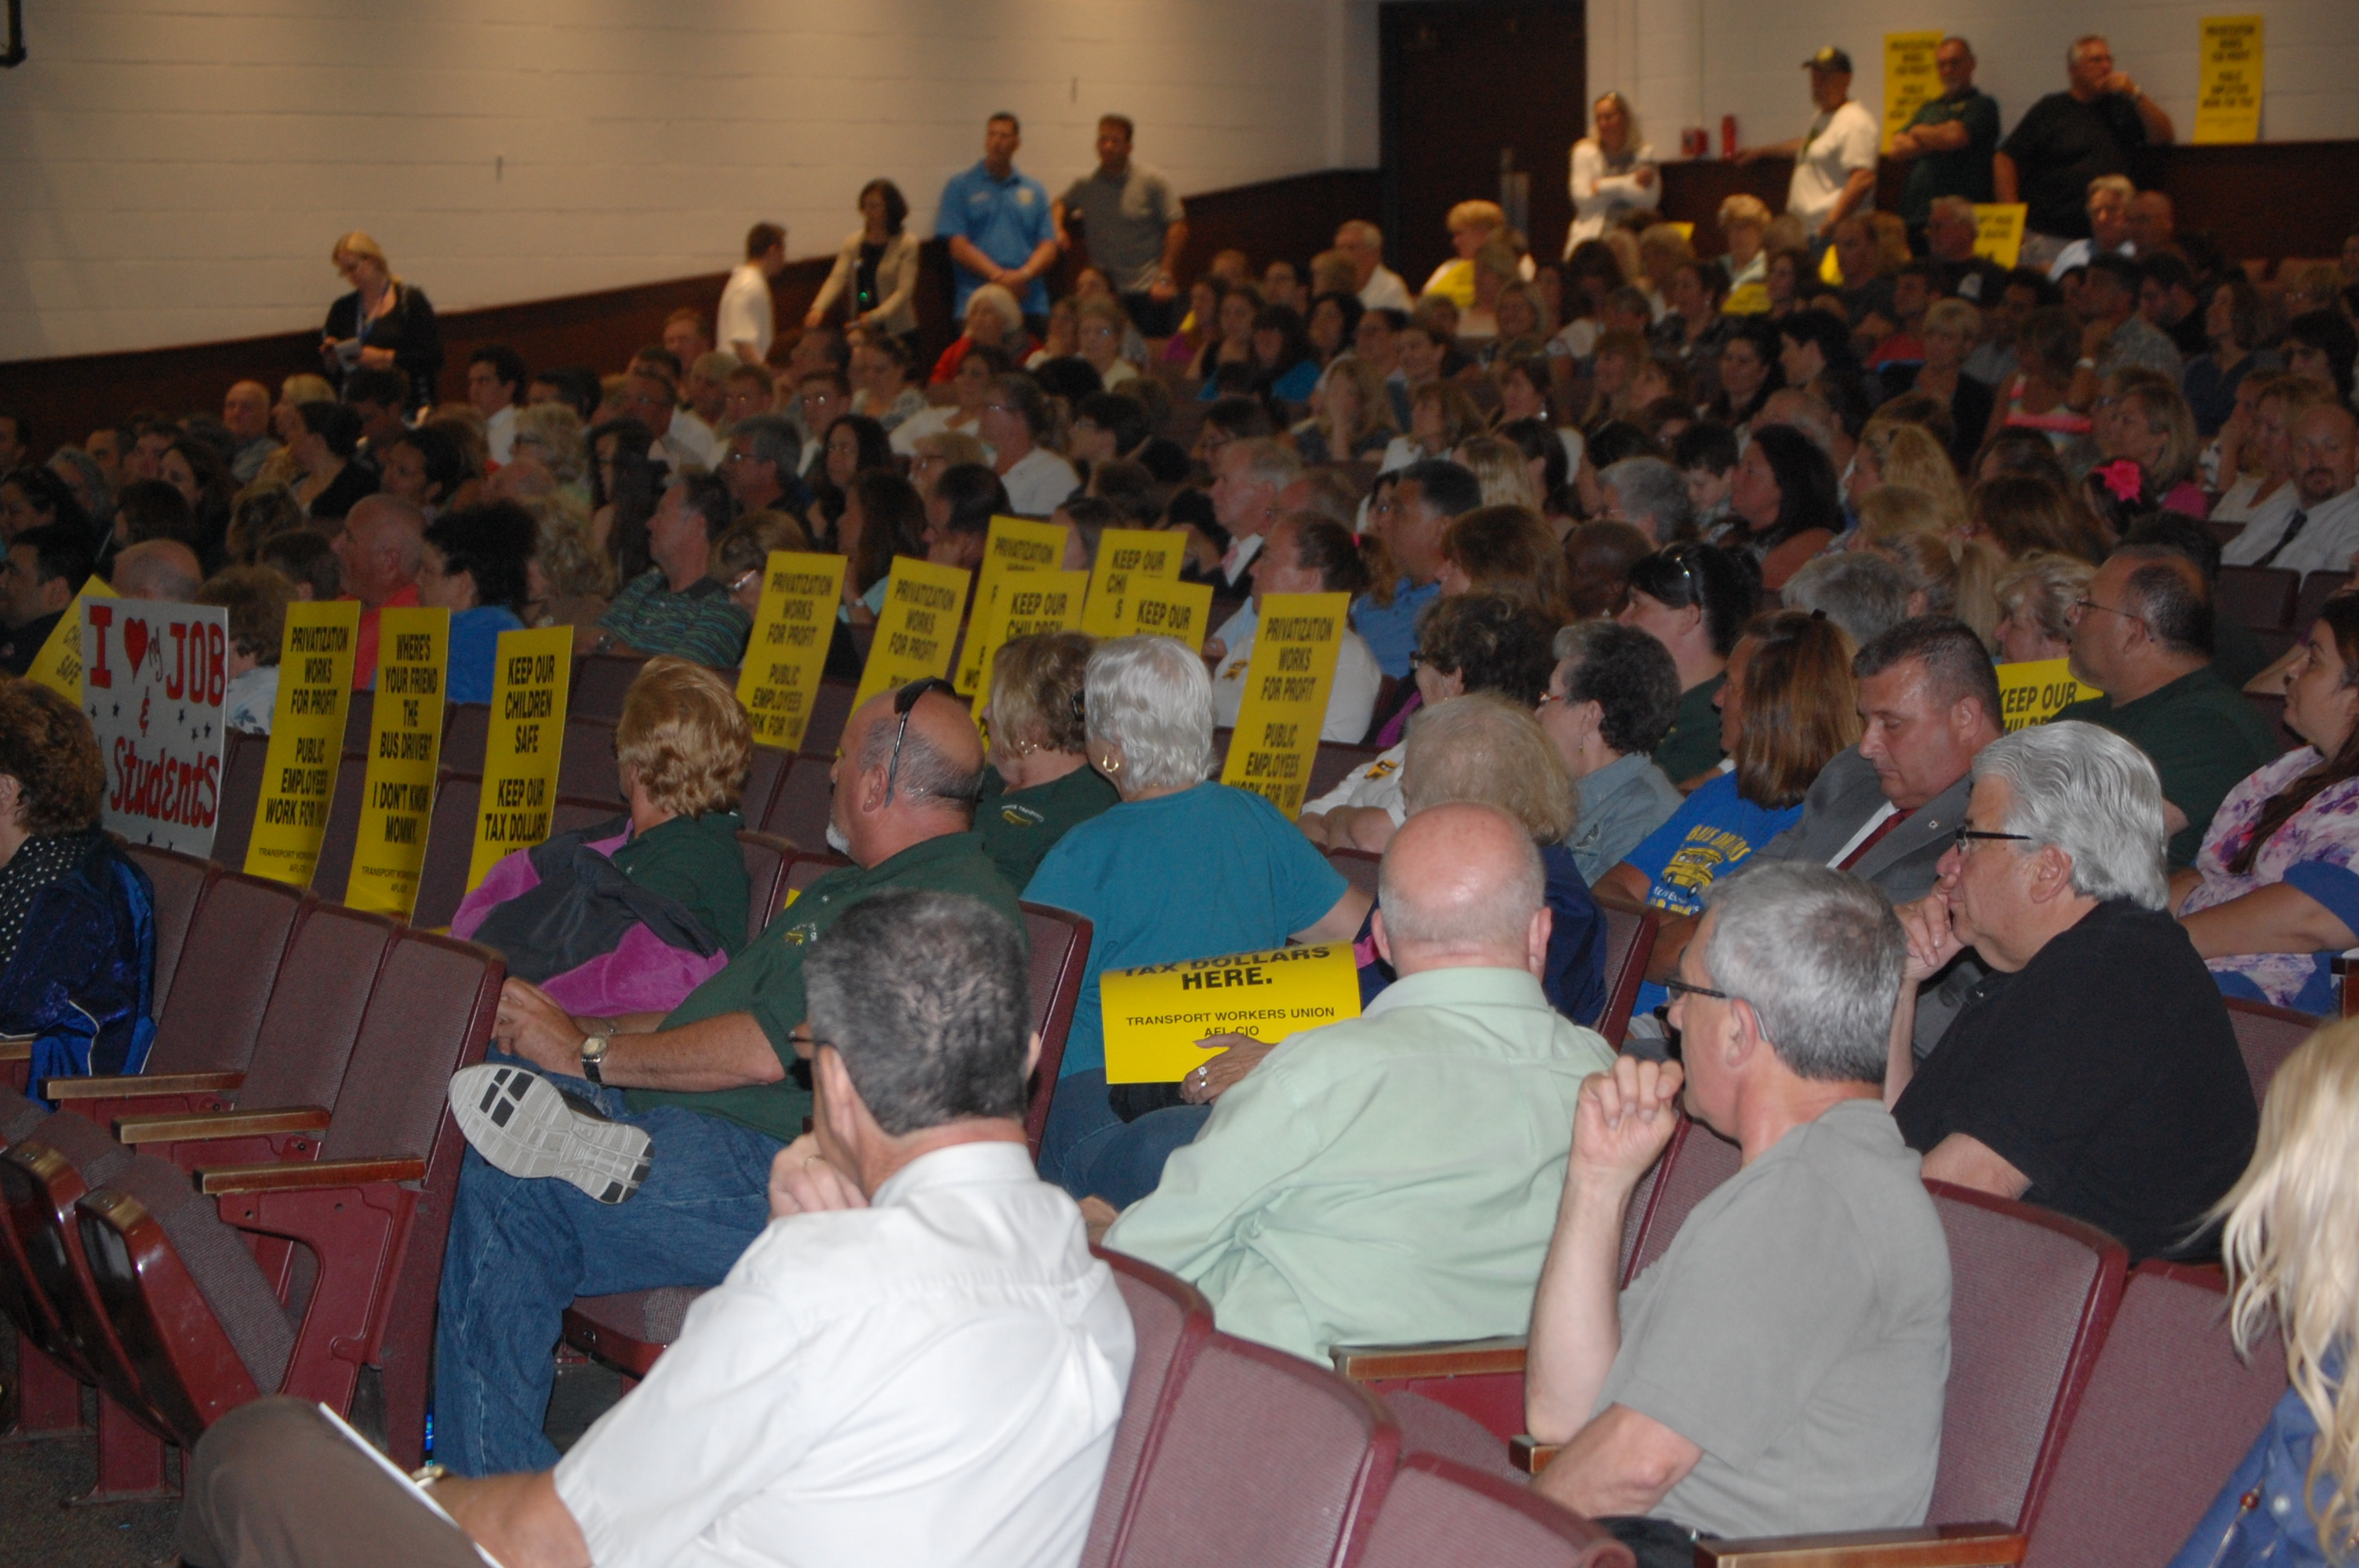 A packed house at the May 28, 2015 Brick Board of Education meeting. (Photo: Daniel Nee)